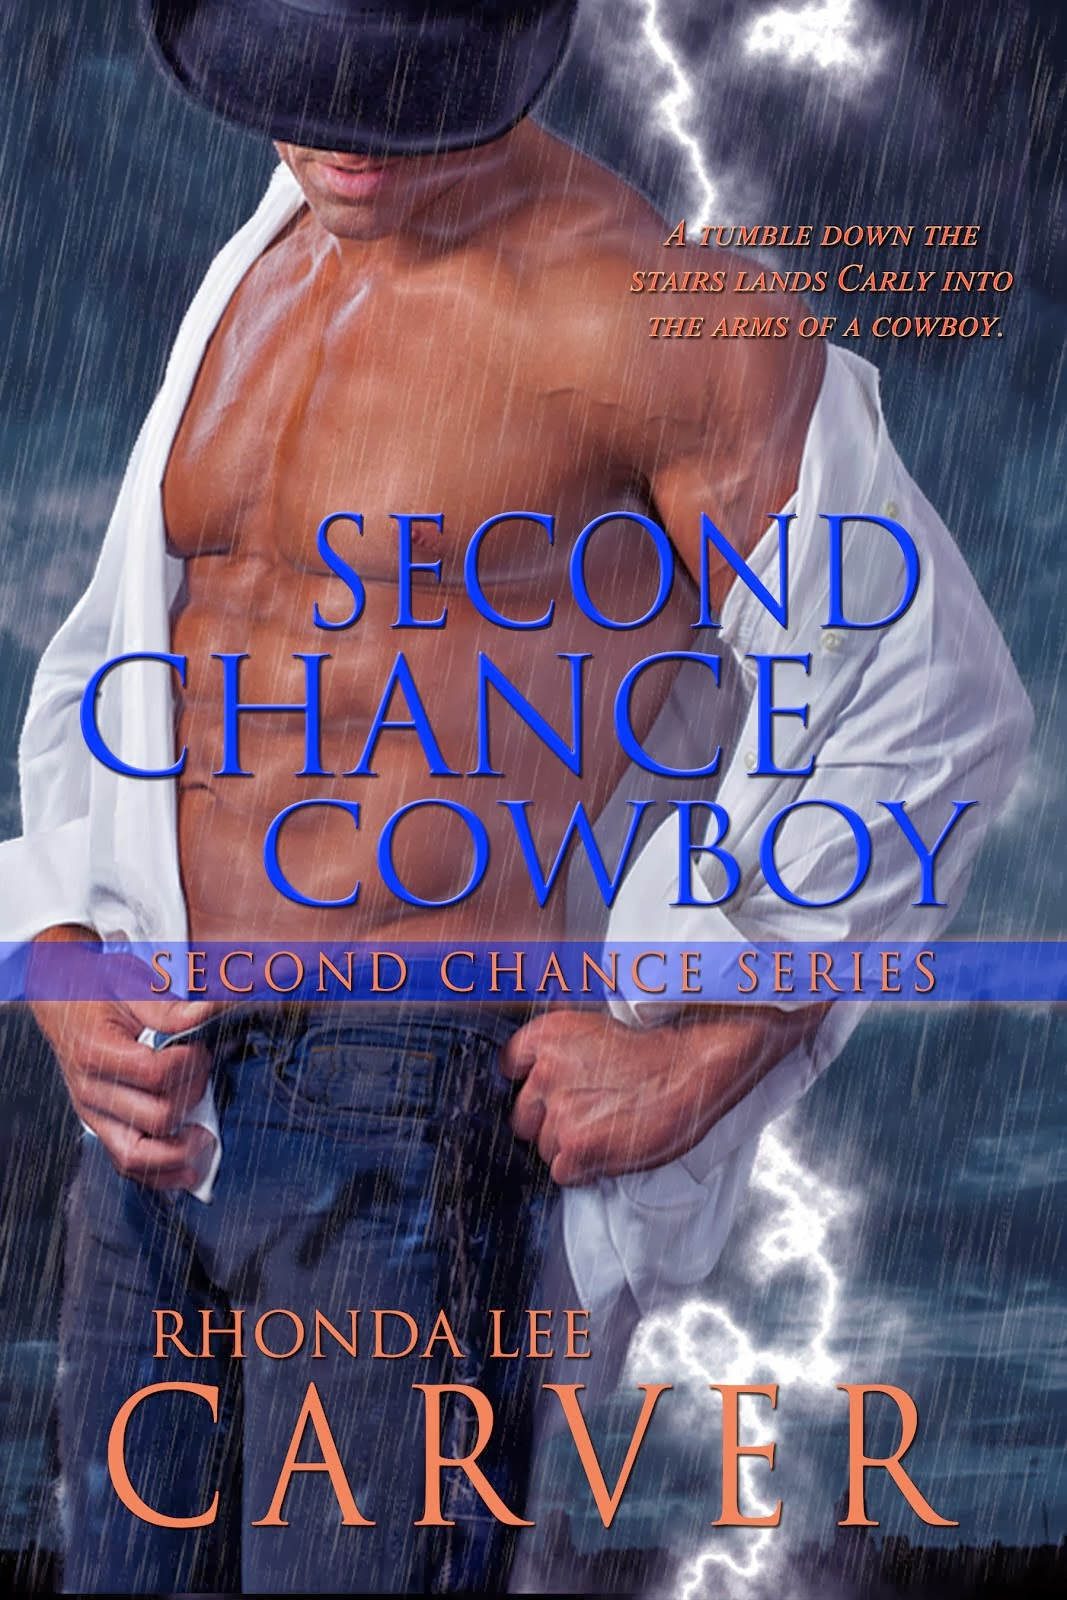 Second Chance Cowboy